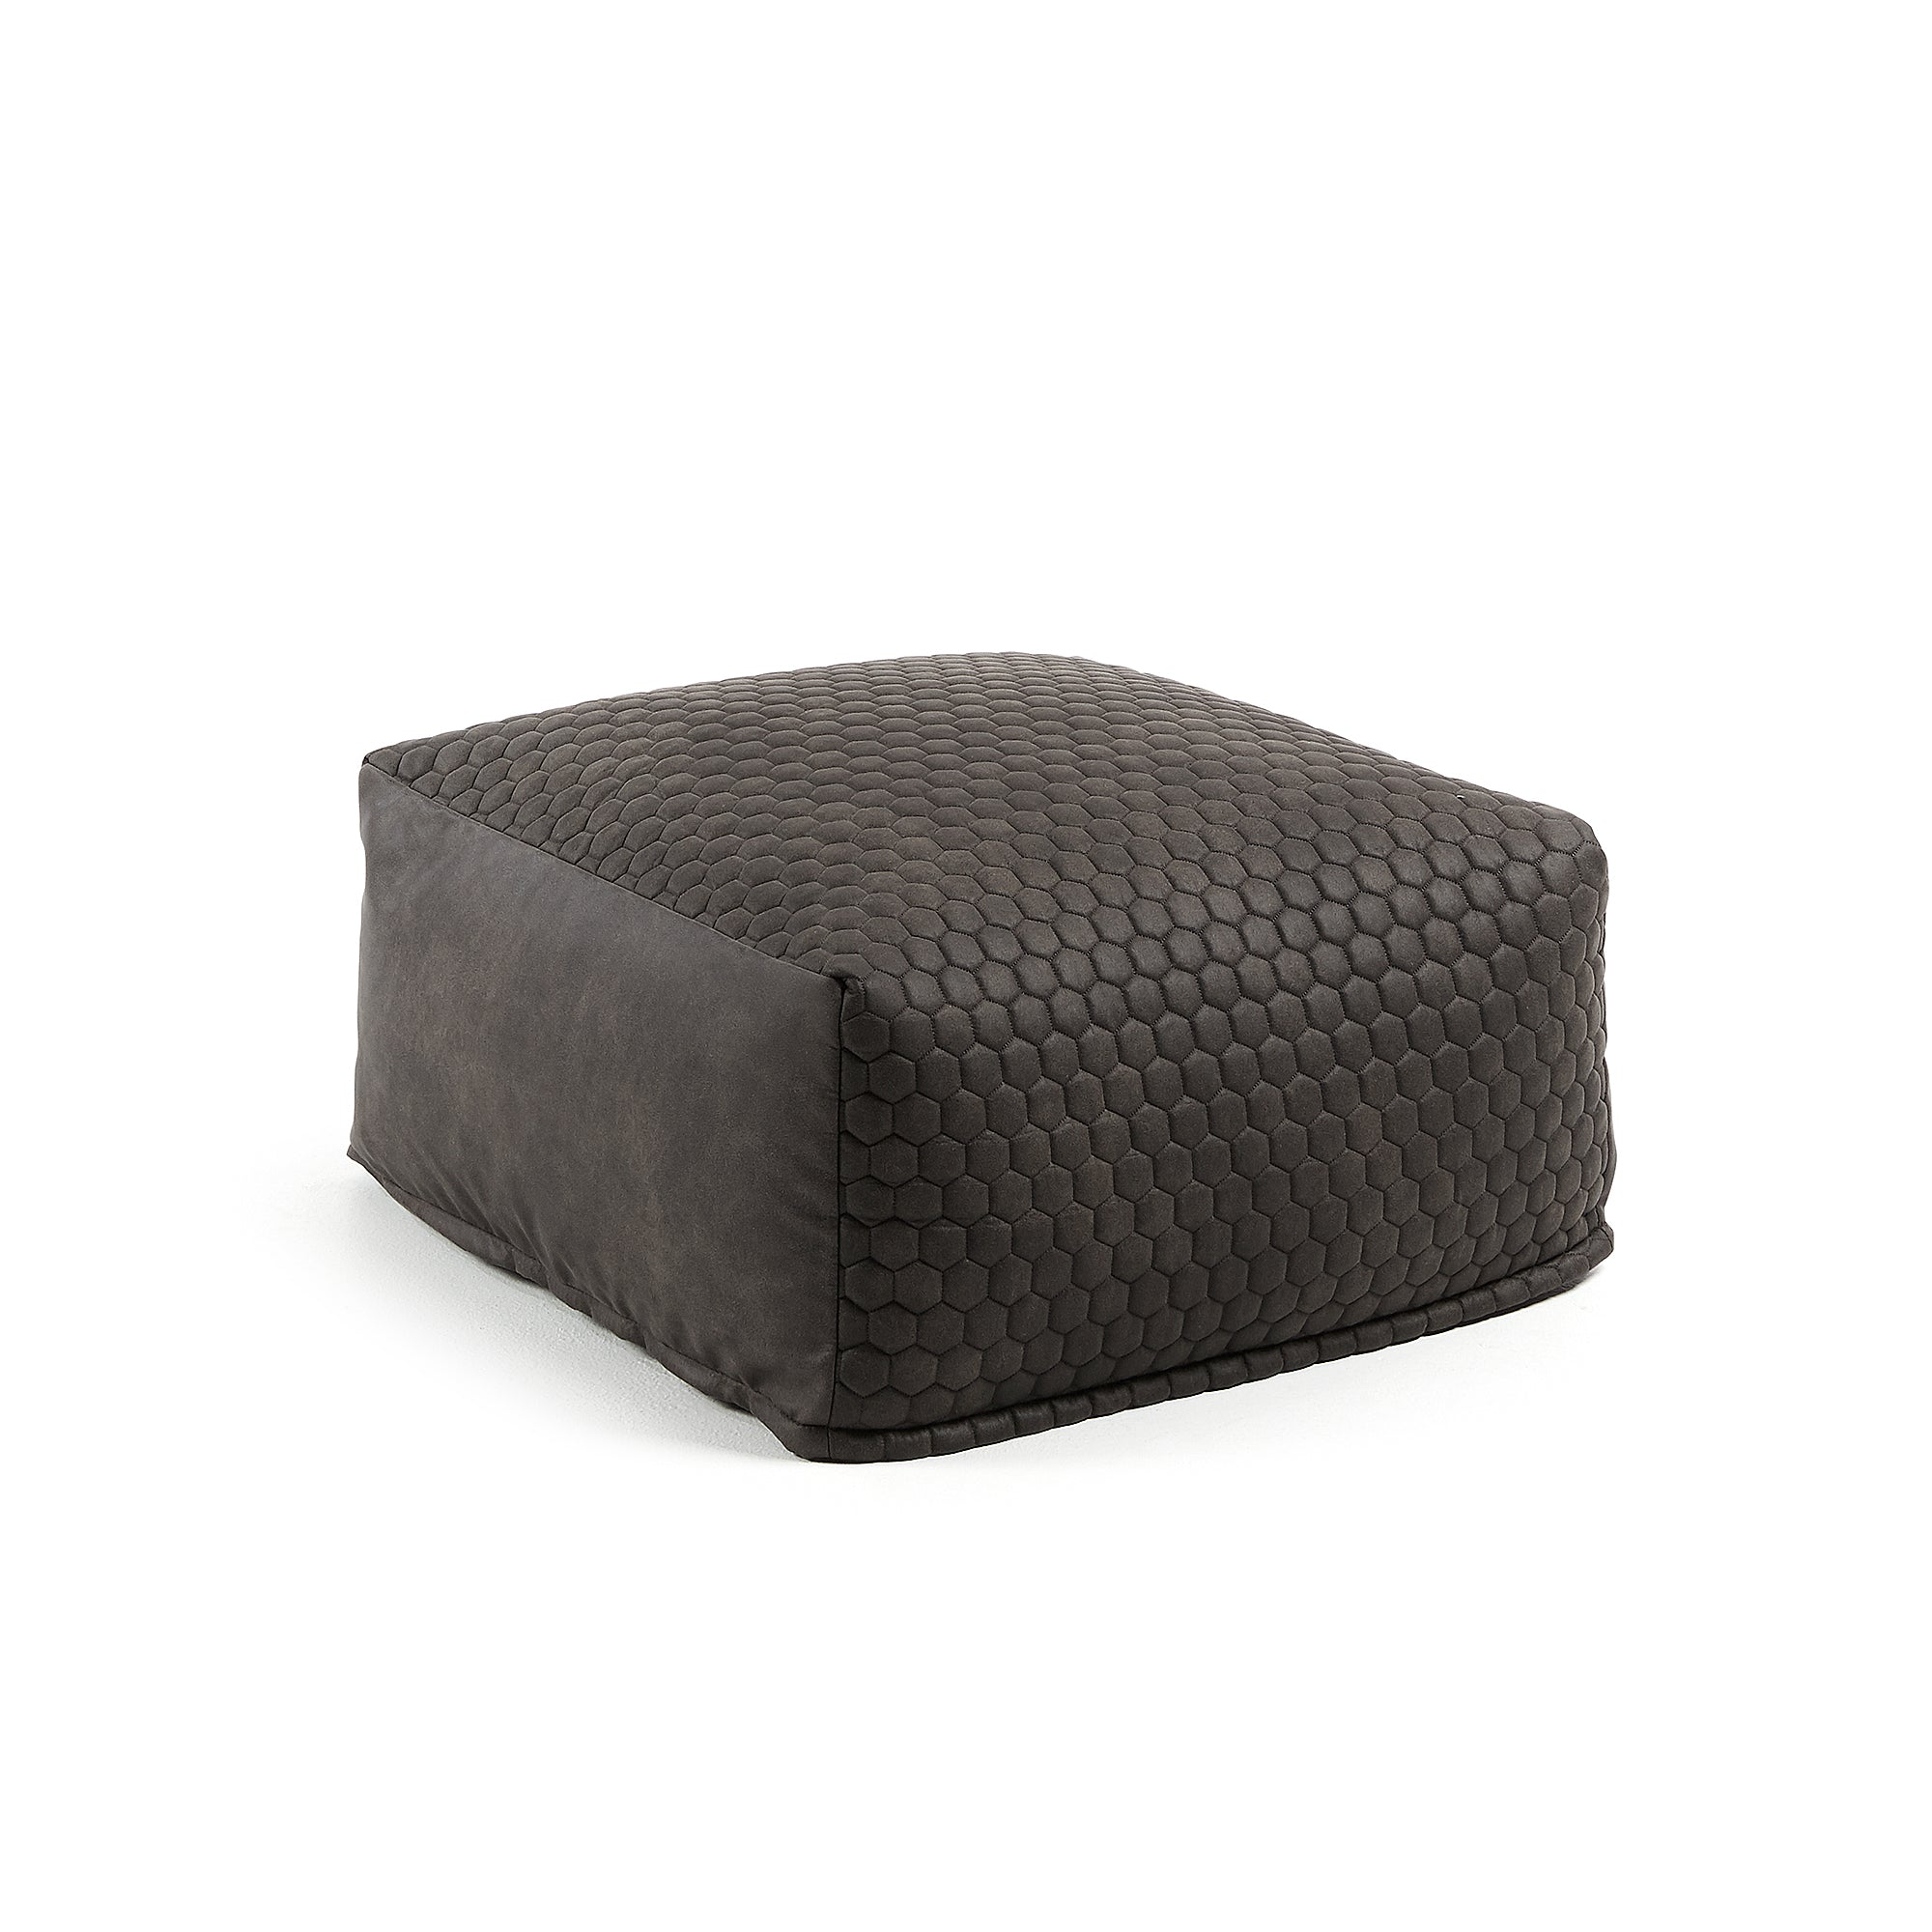 Borna Pouf - Graphite with Honeycomb Detail and Removable Cover, Pouf - Home-Buy Interiors